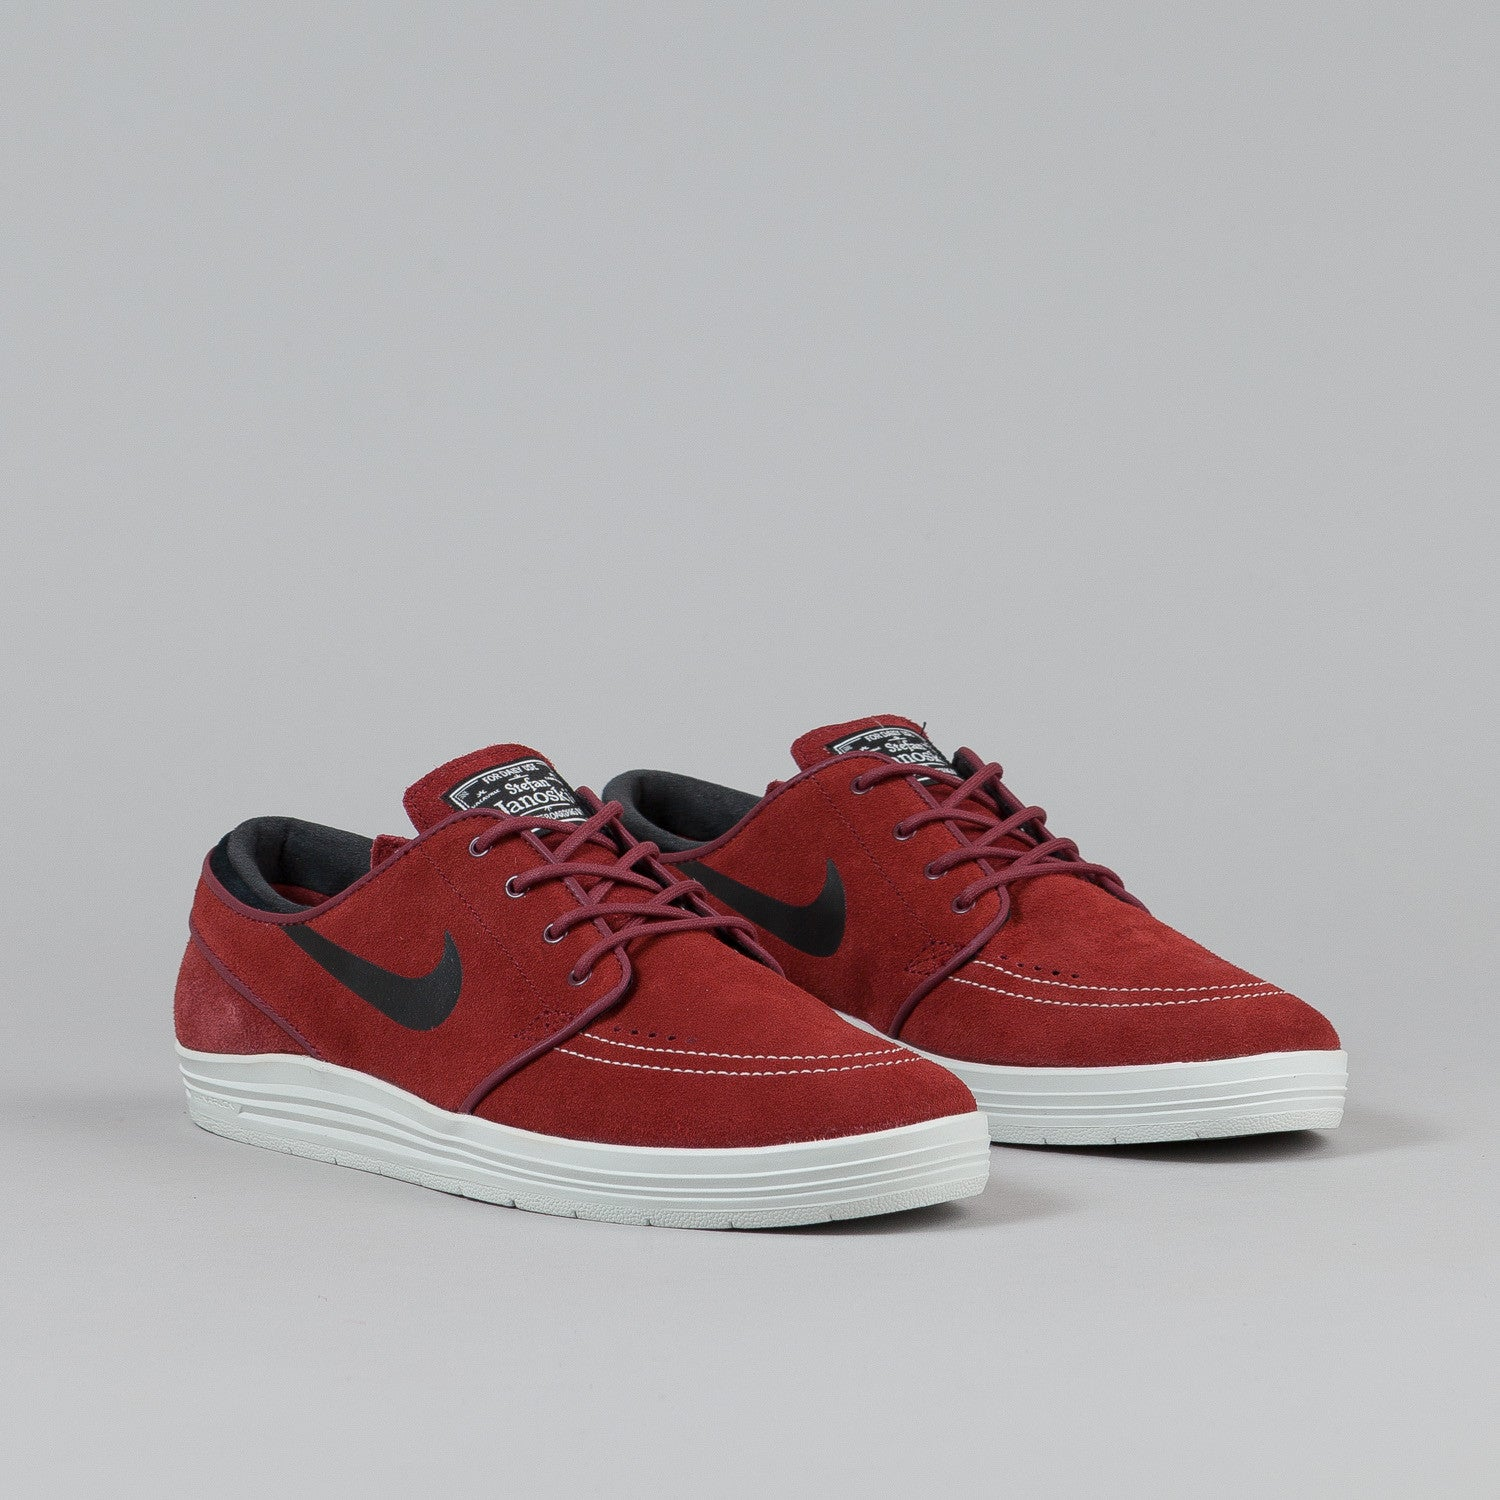 Nike SB Lunar Stefan Janoski Team Red/Black - Summit White